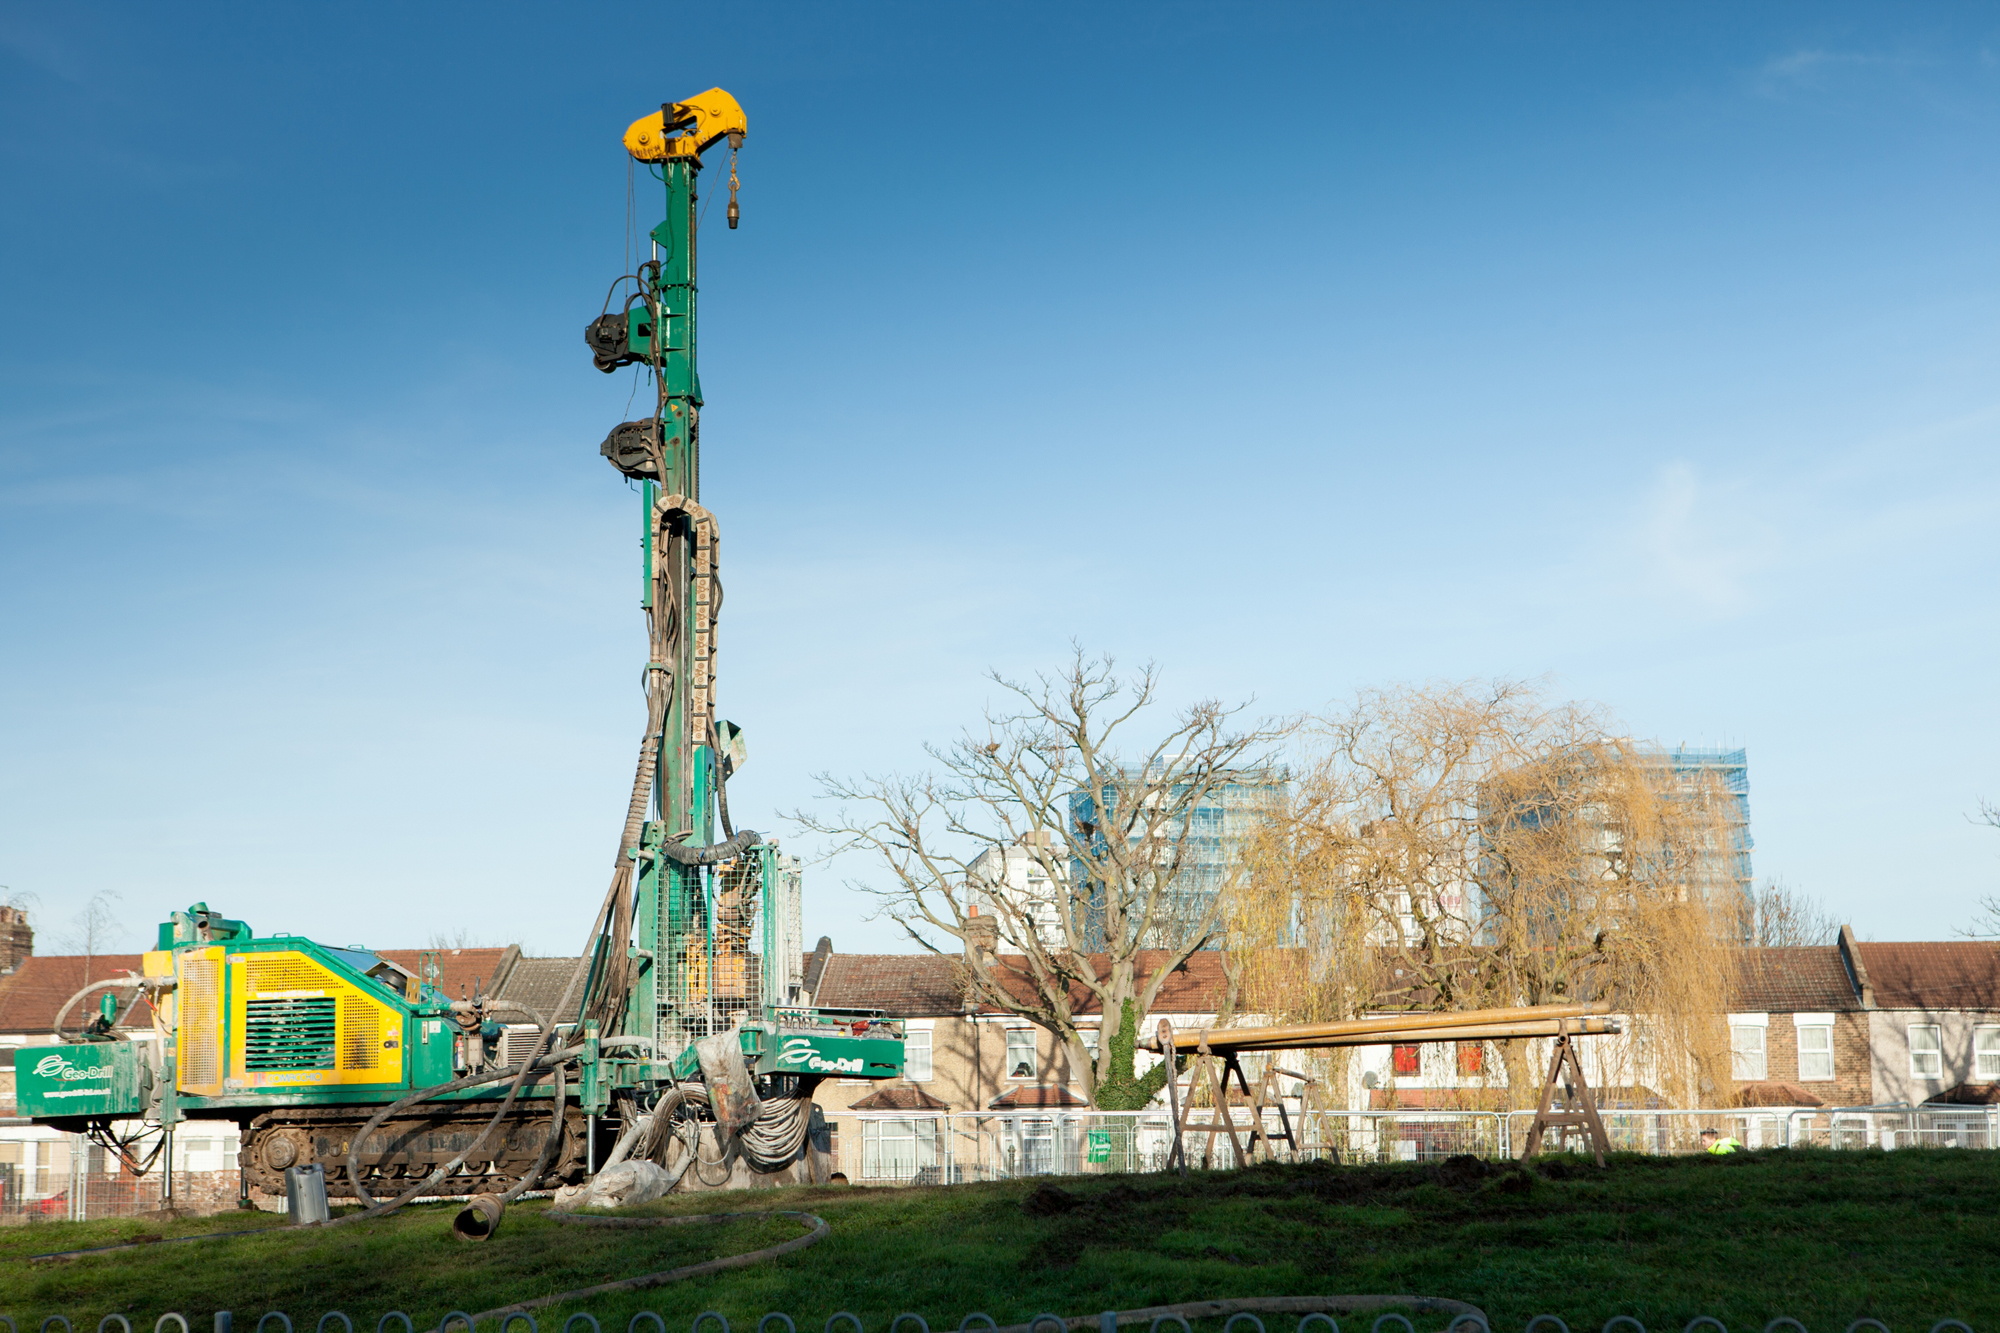 Work commences on England's largest district ground loop heat pump system